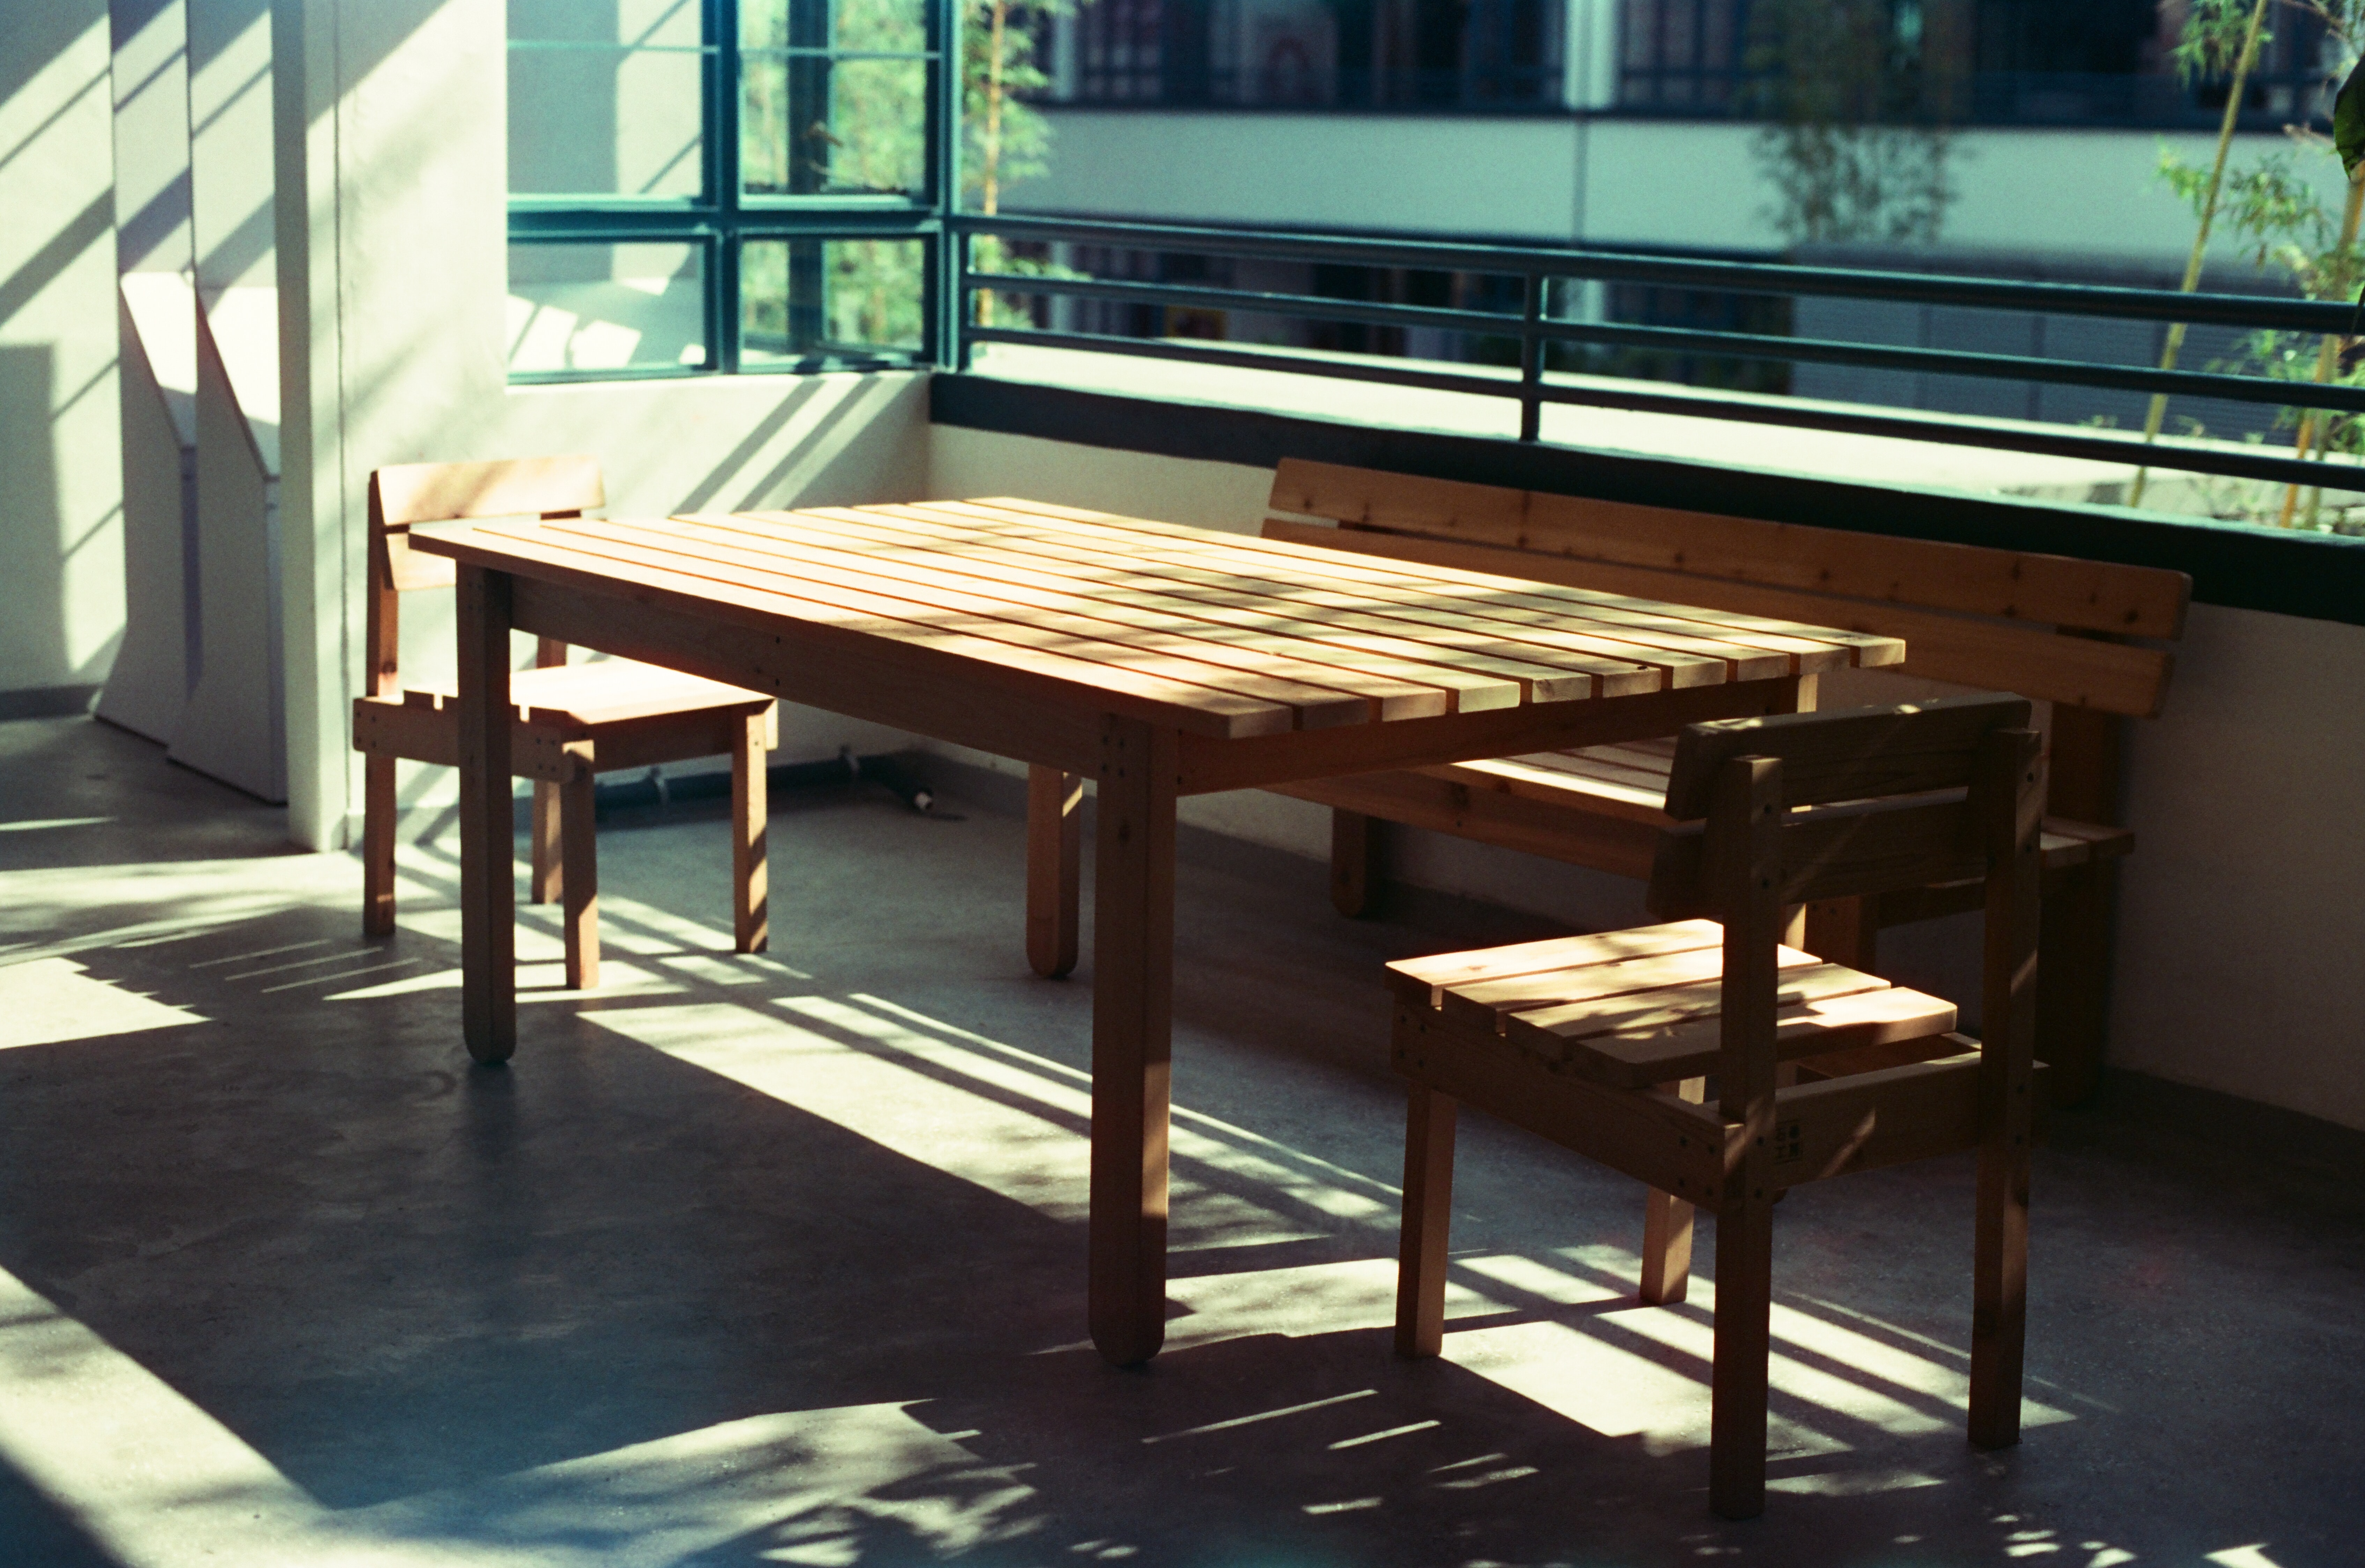 An empty room with neatly polished furniture- table and chairs with an interior lightly bathed with the sunlight to reflect its ray.